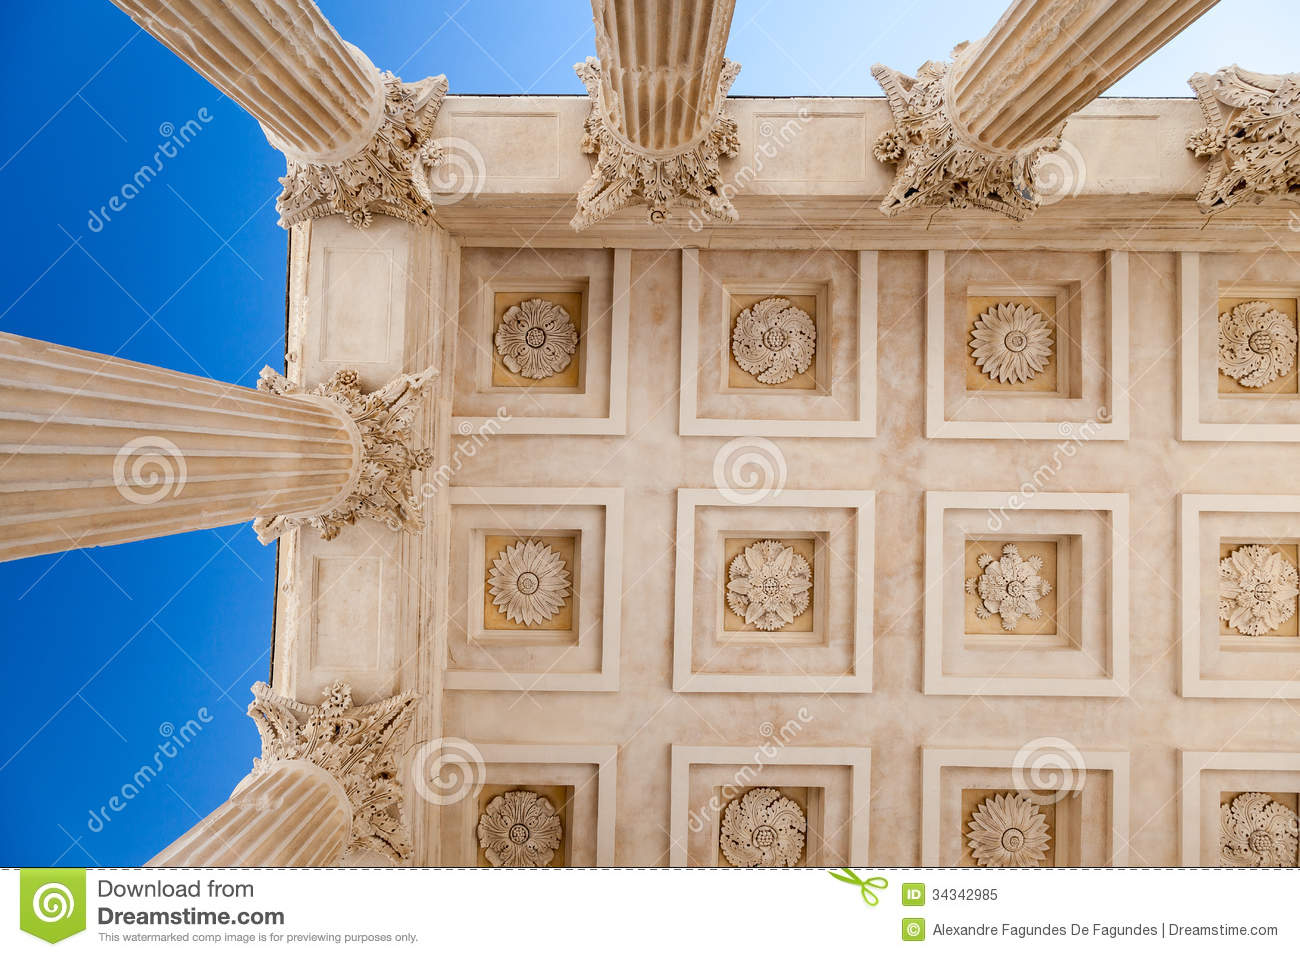 Maison carree nimes france royalty free stock photo for Maison de la literie nimes